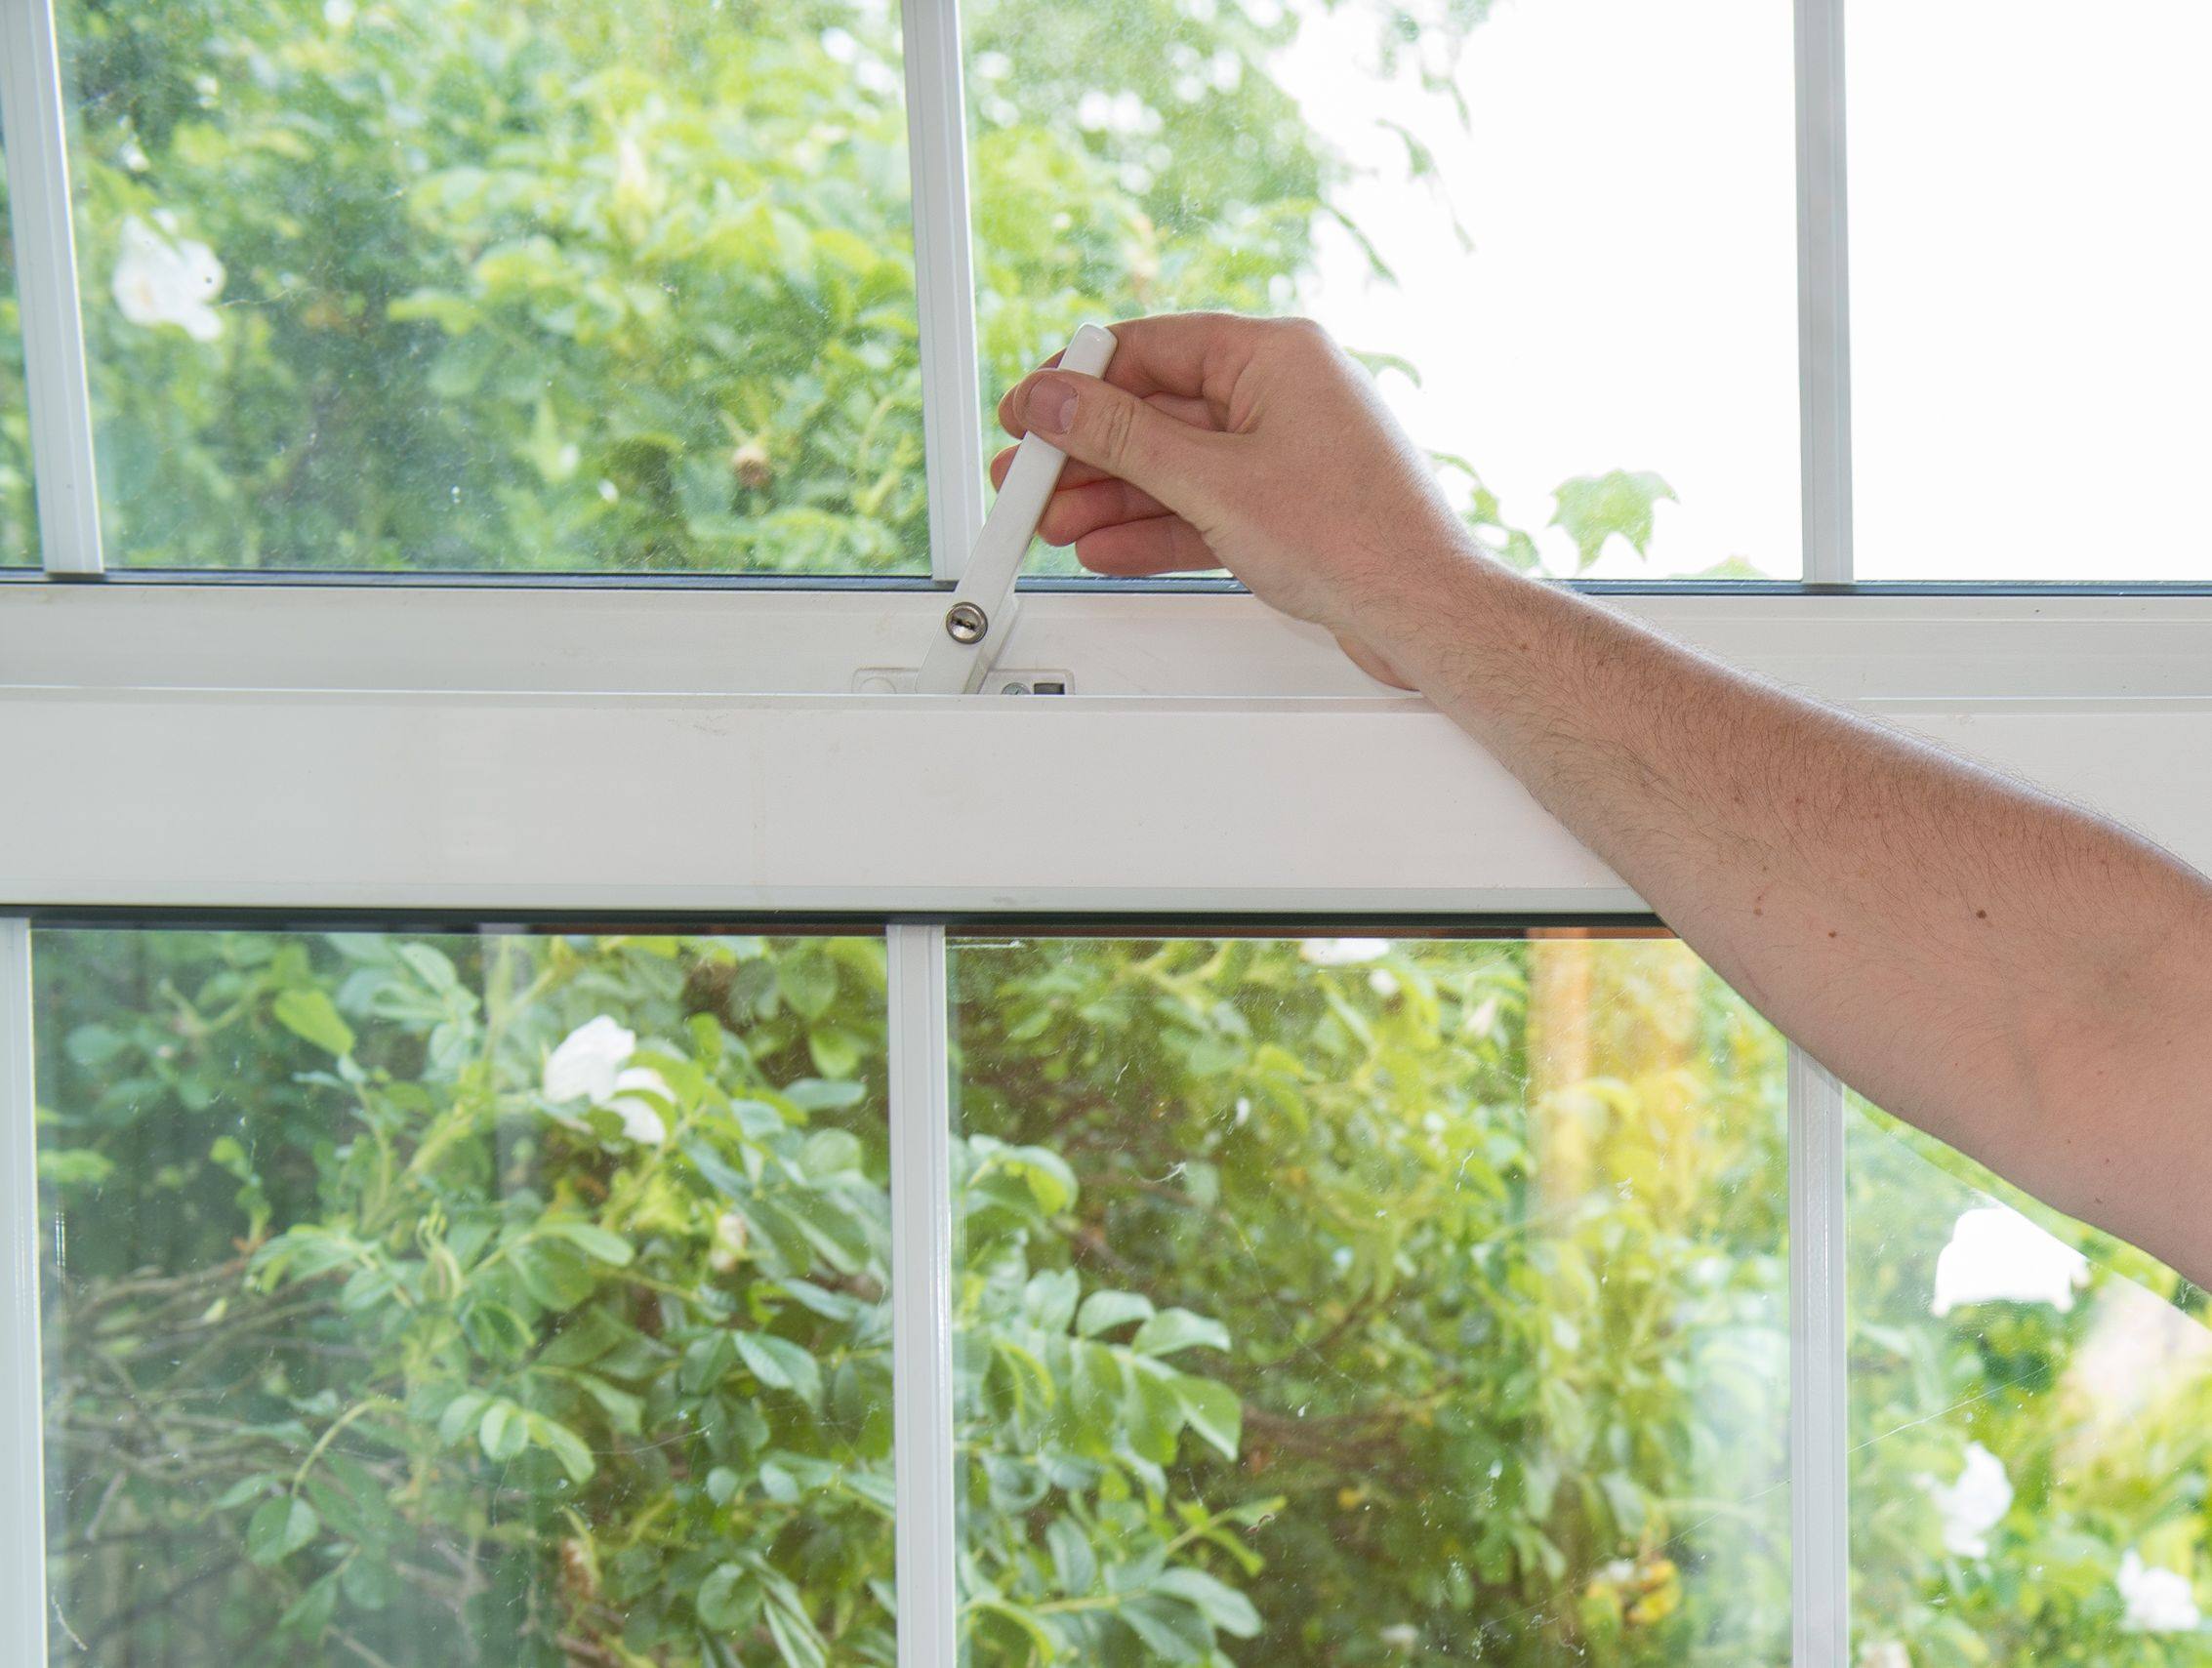 Important tips for Window Lock Security